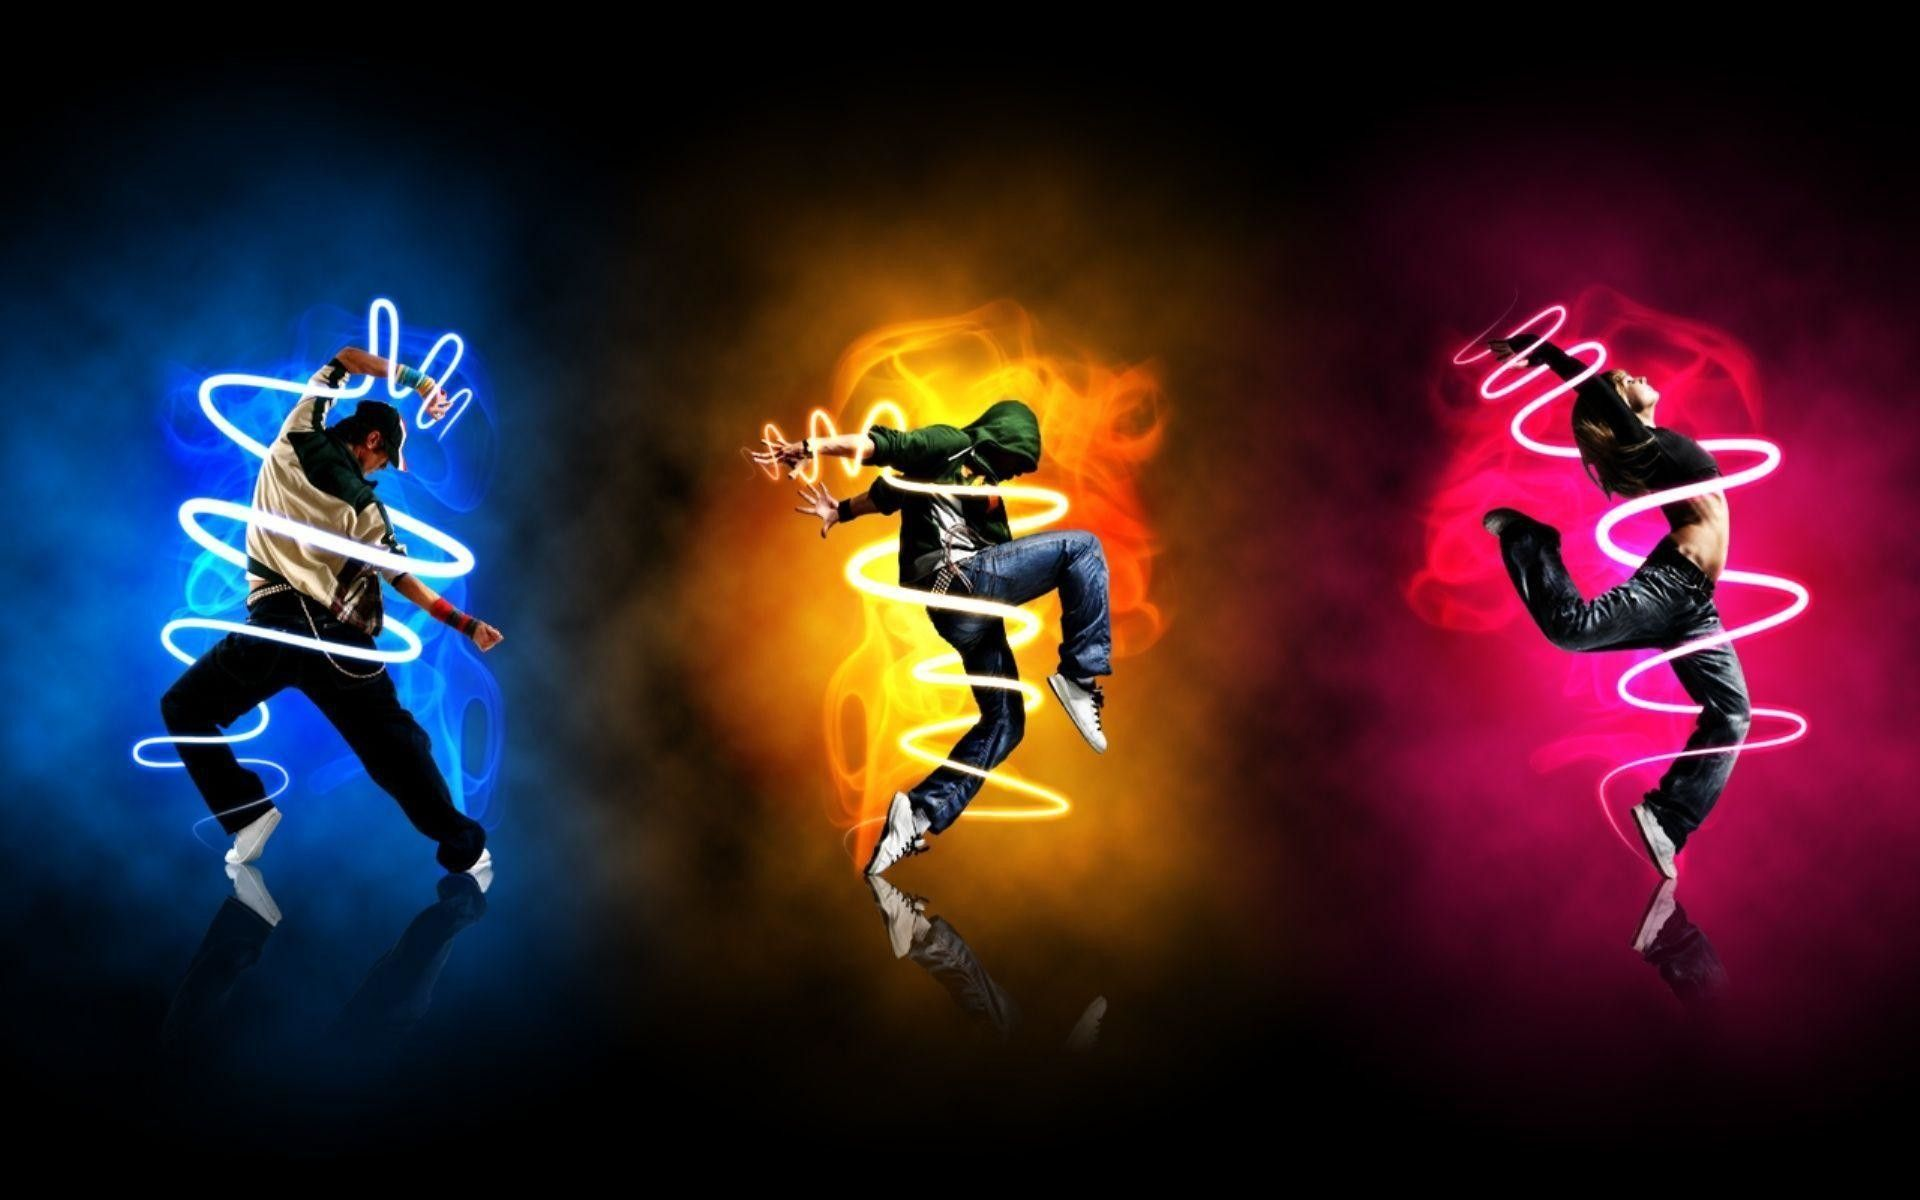 Pics For Cool Dance Background Wallpapers Dance wallpaper 1920x1200